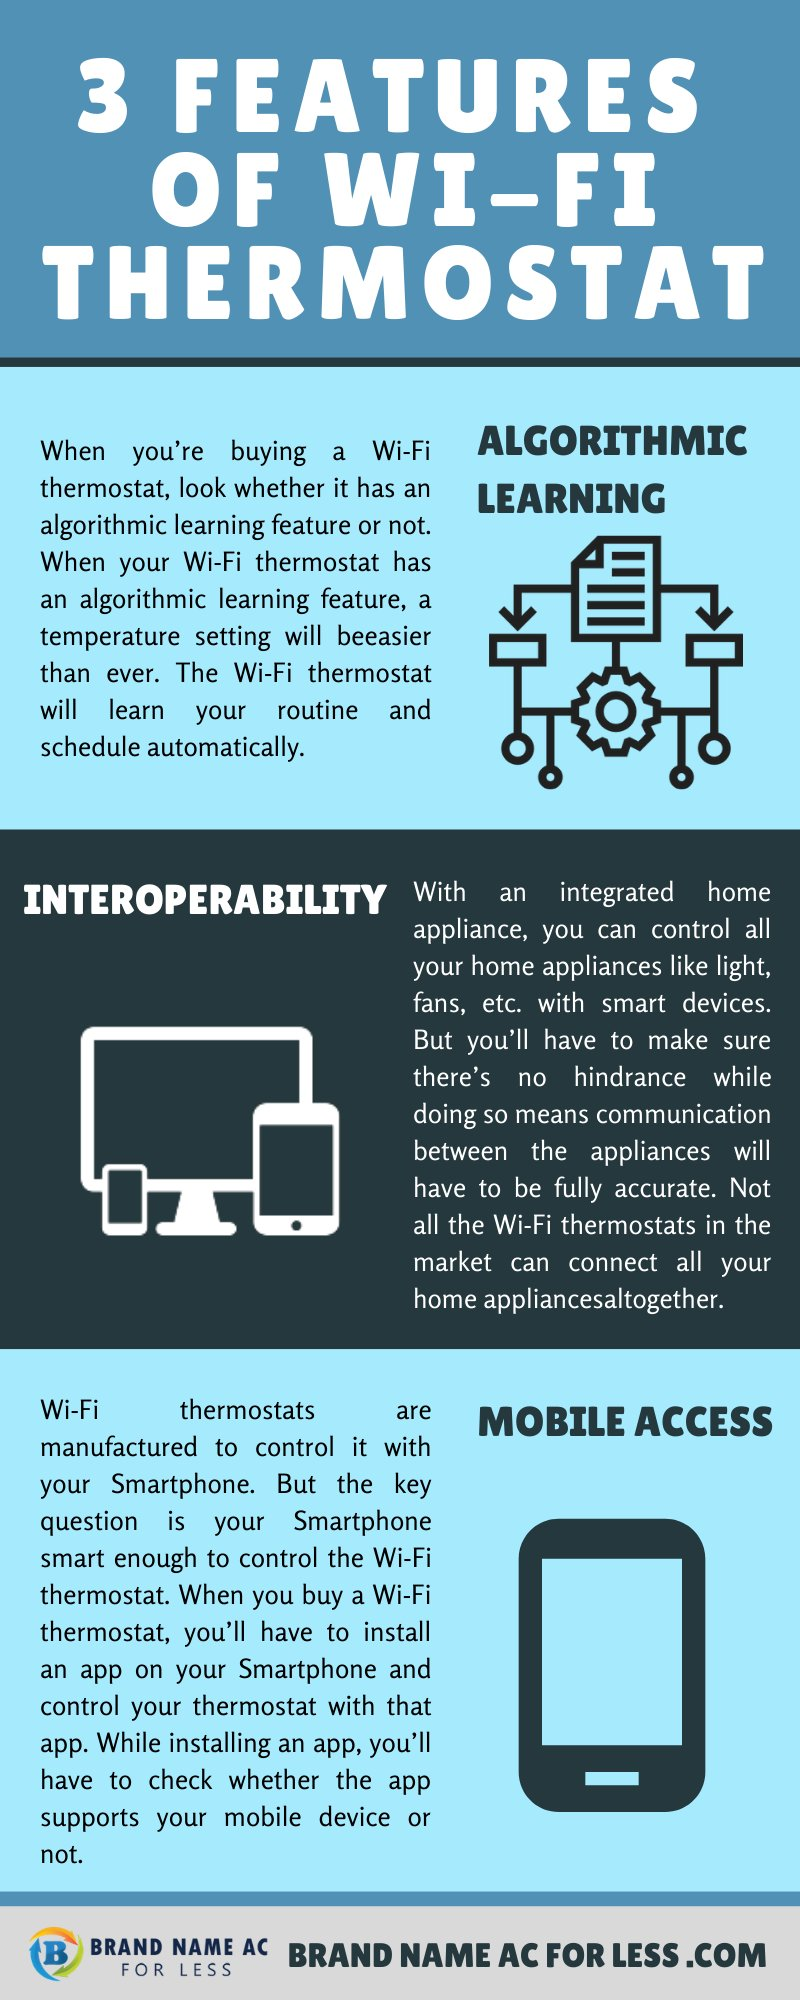 3 Features of WiFi Thermostat